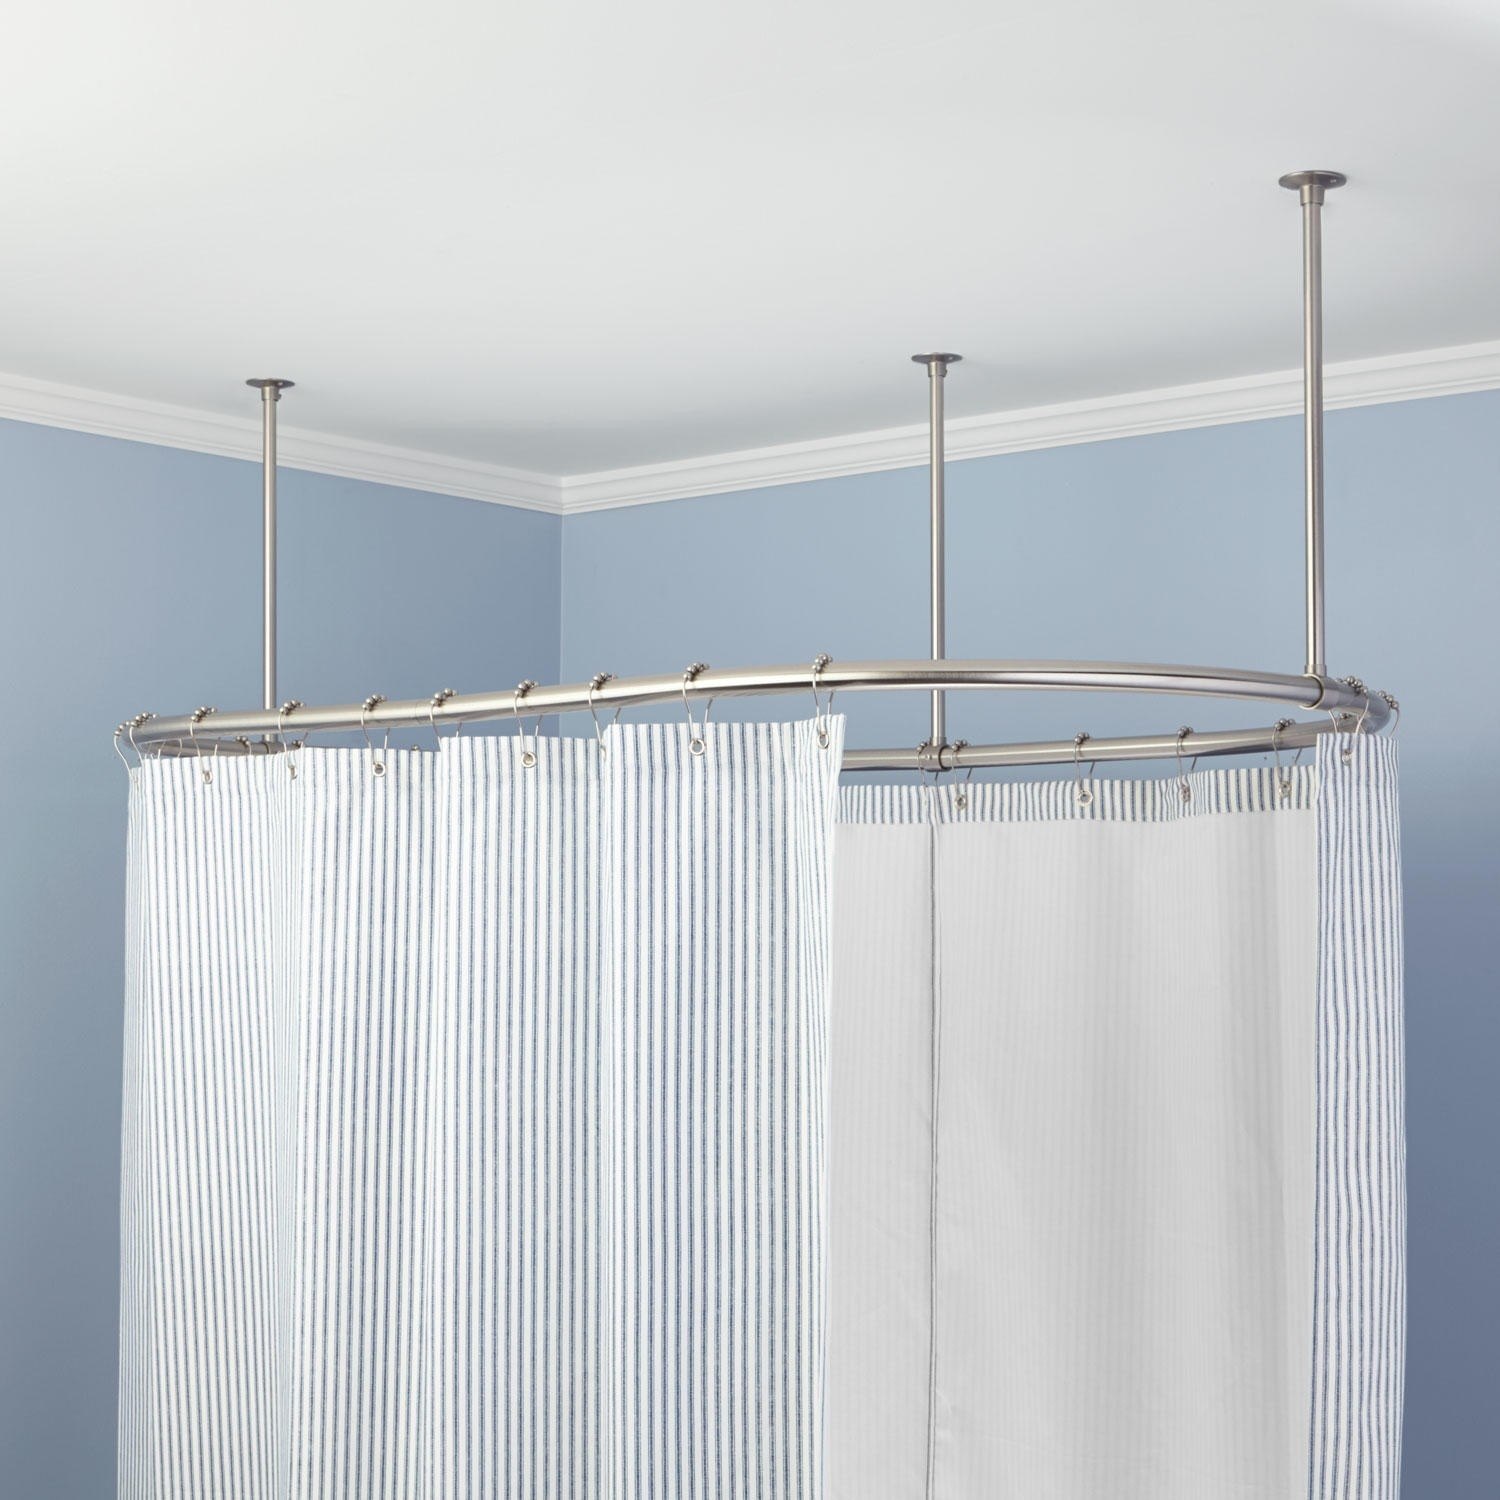 7 foot shower curtain. 7 Foot Shower Curtain Rod Rods And Window Curtains With Regard To  Size 1500 X Ideas